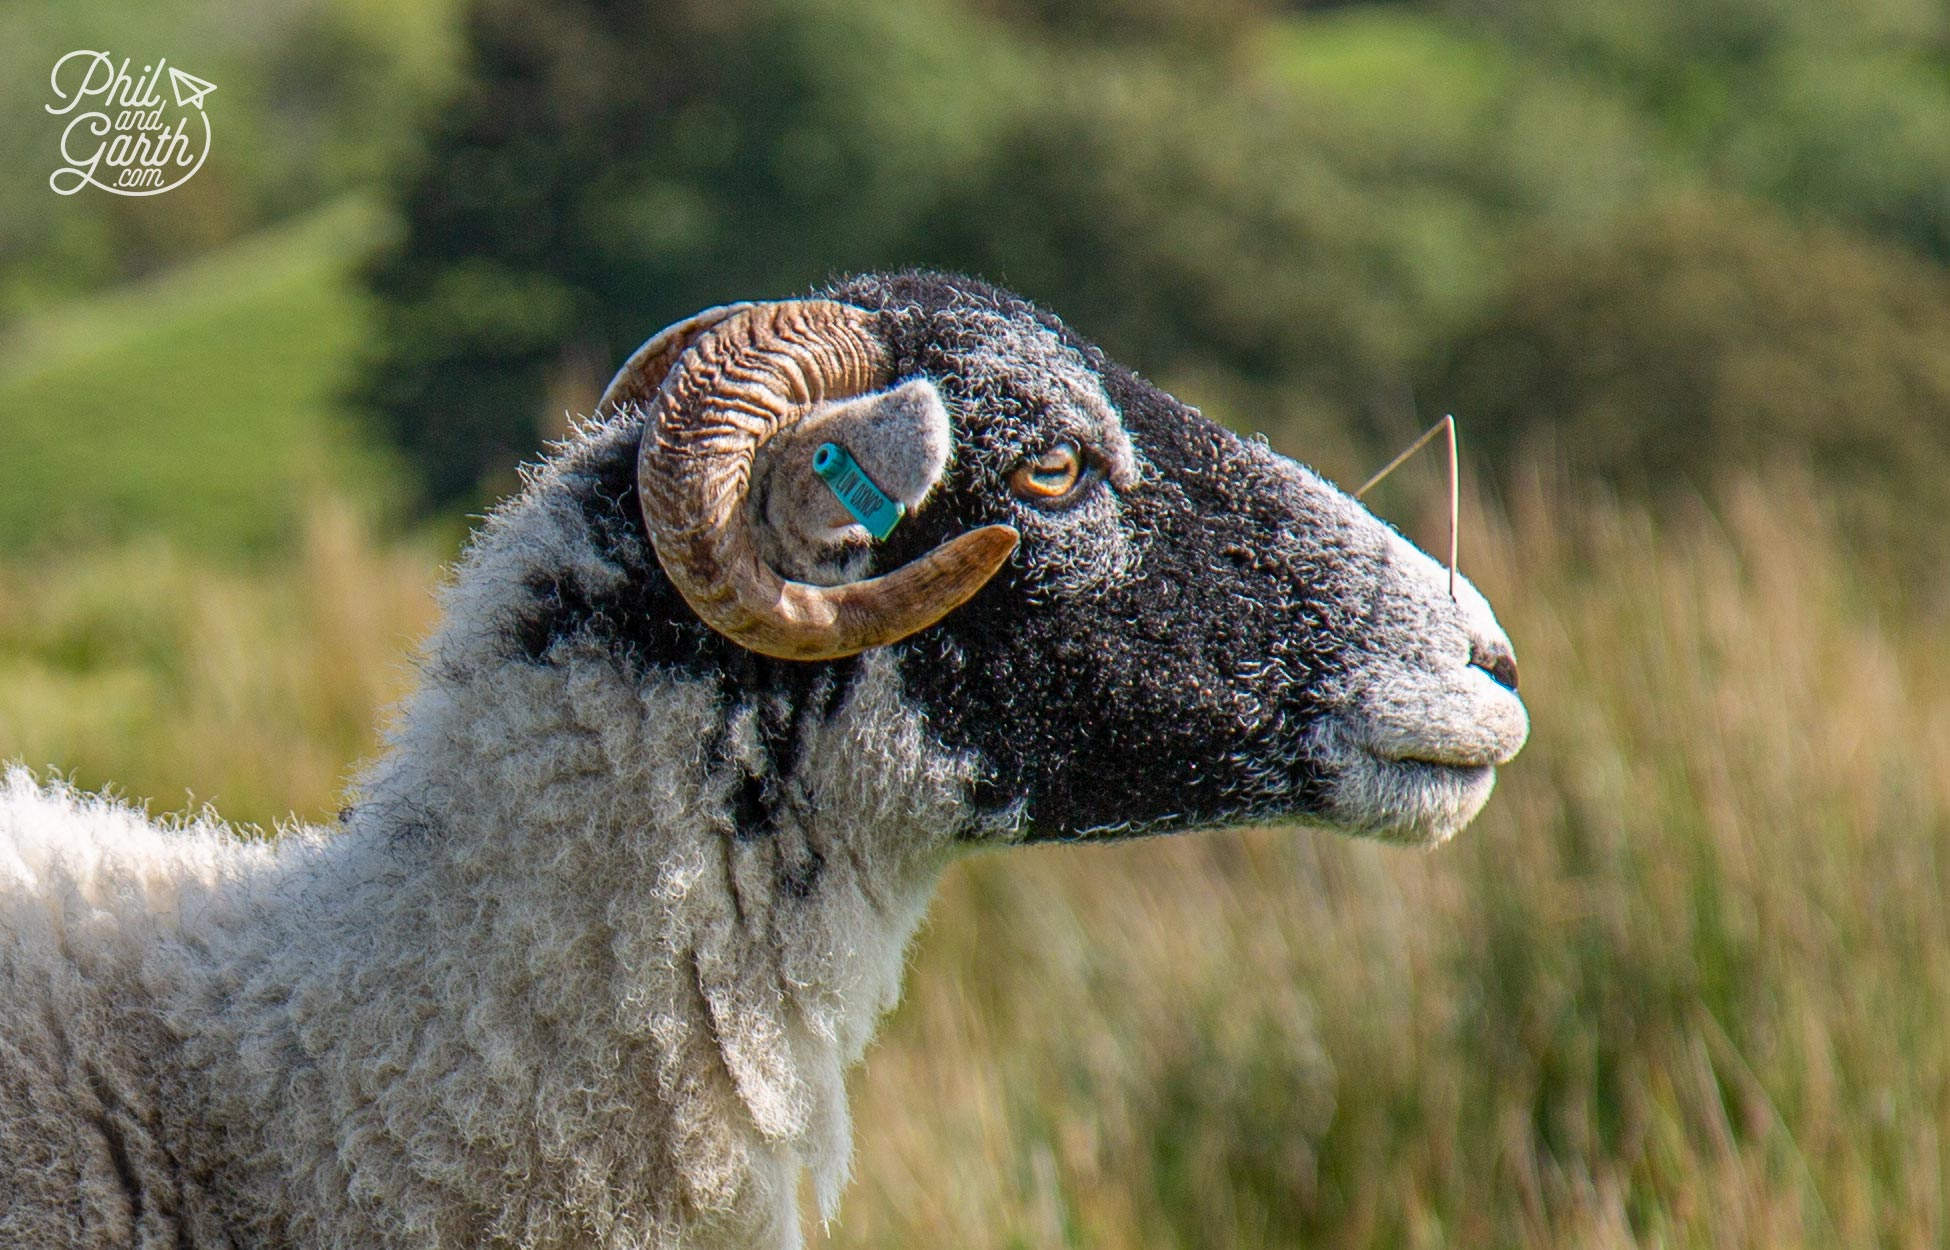 Swaledale sheep have distinctive curled horns